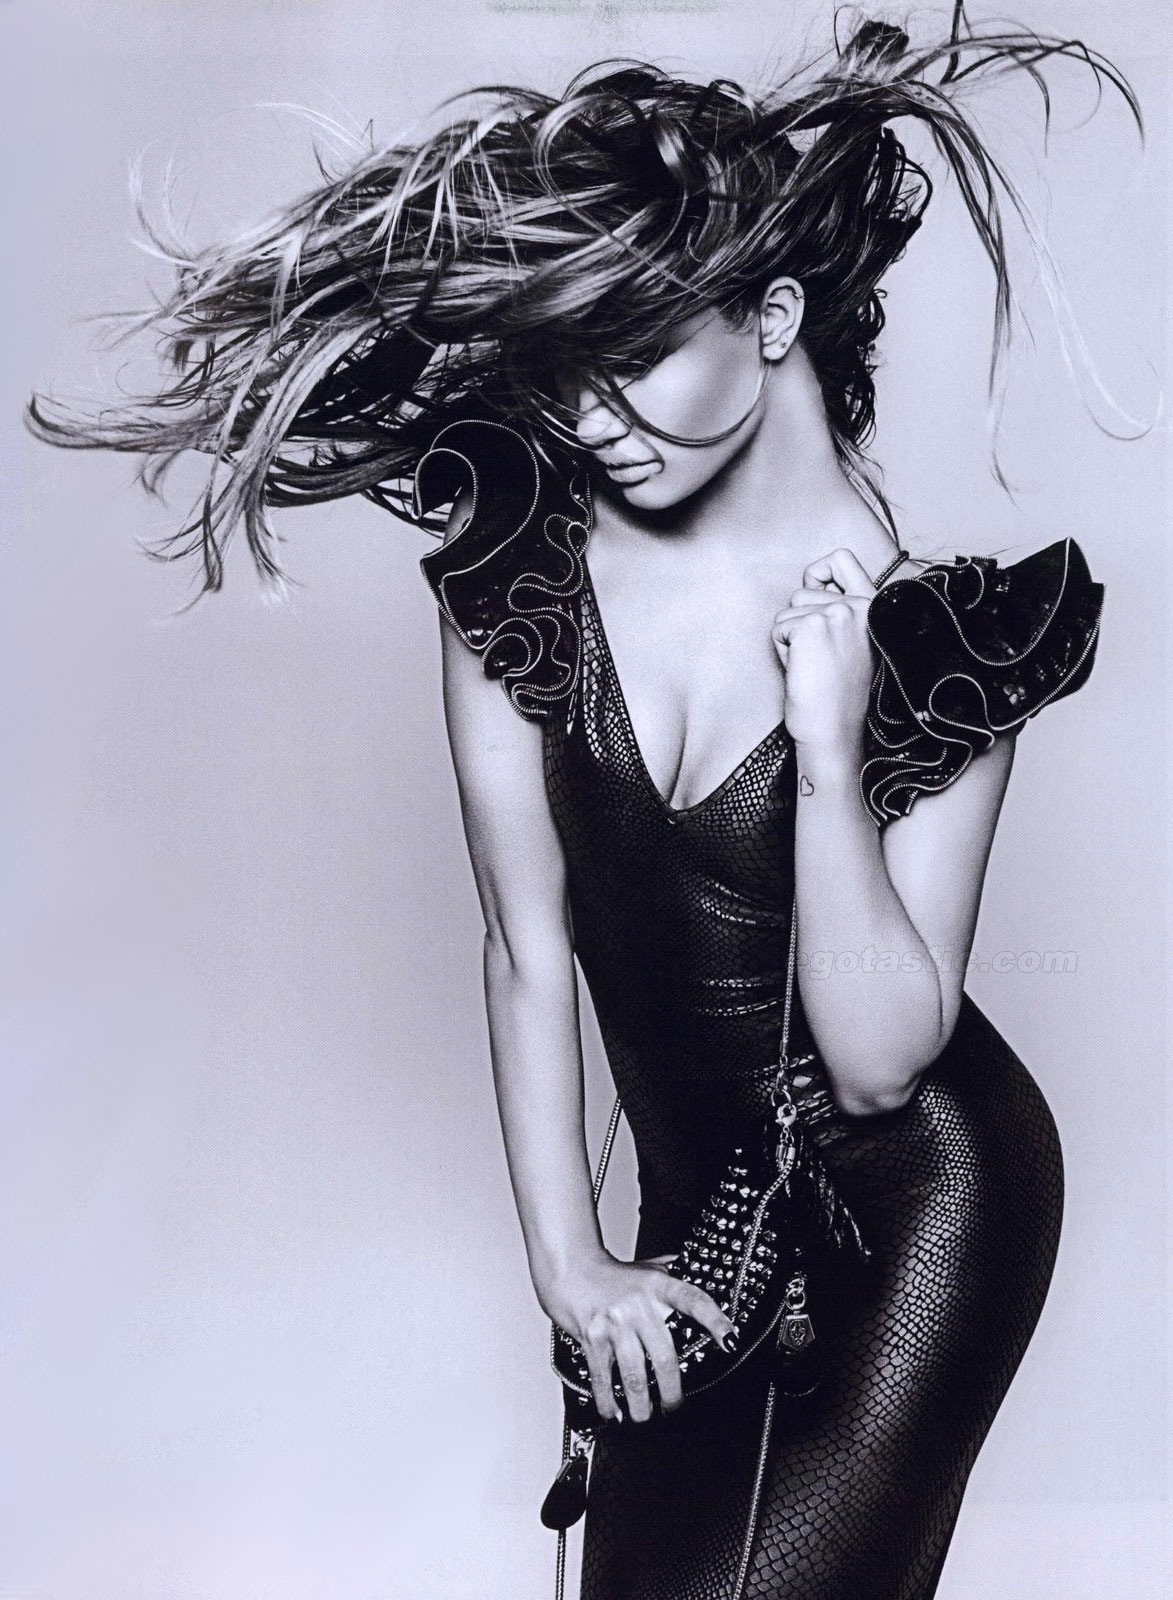 rosie-huntington-whiteley-thomas-wylde-shoot-01